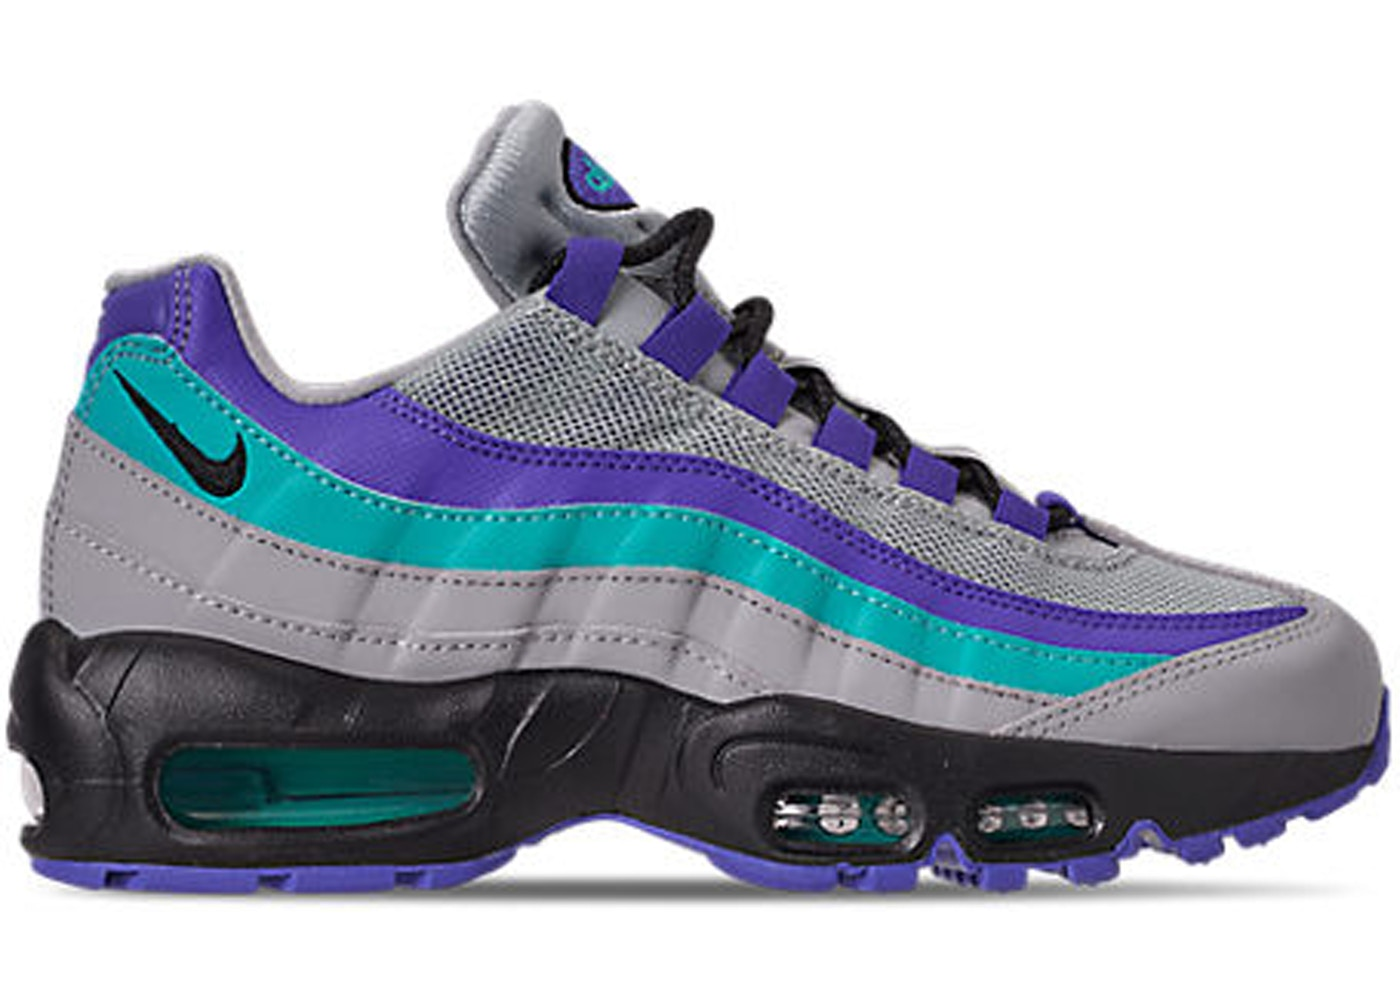 cheaper 056d7 59bf3 Nike Air Max 95 Wolf Grey Grape - 0